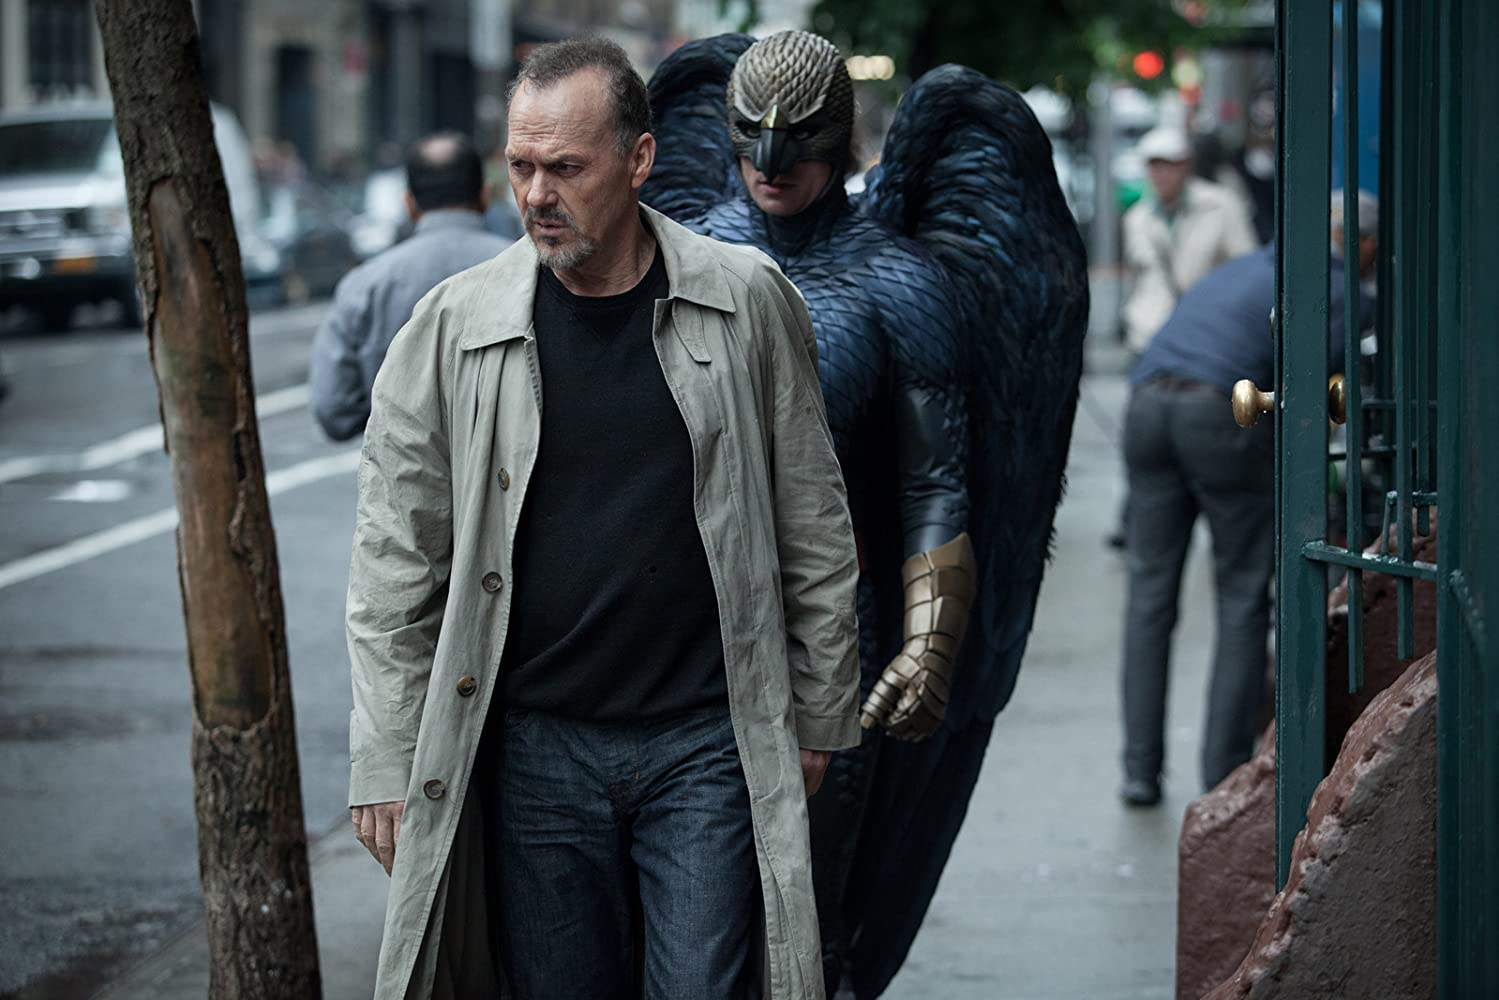 The former Birdman character appears to follow Riggan in his mind on a busy street.